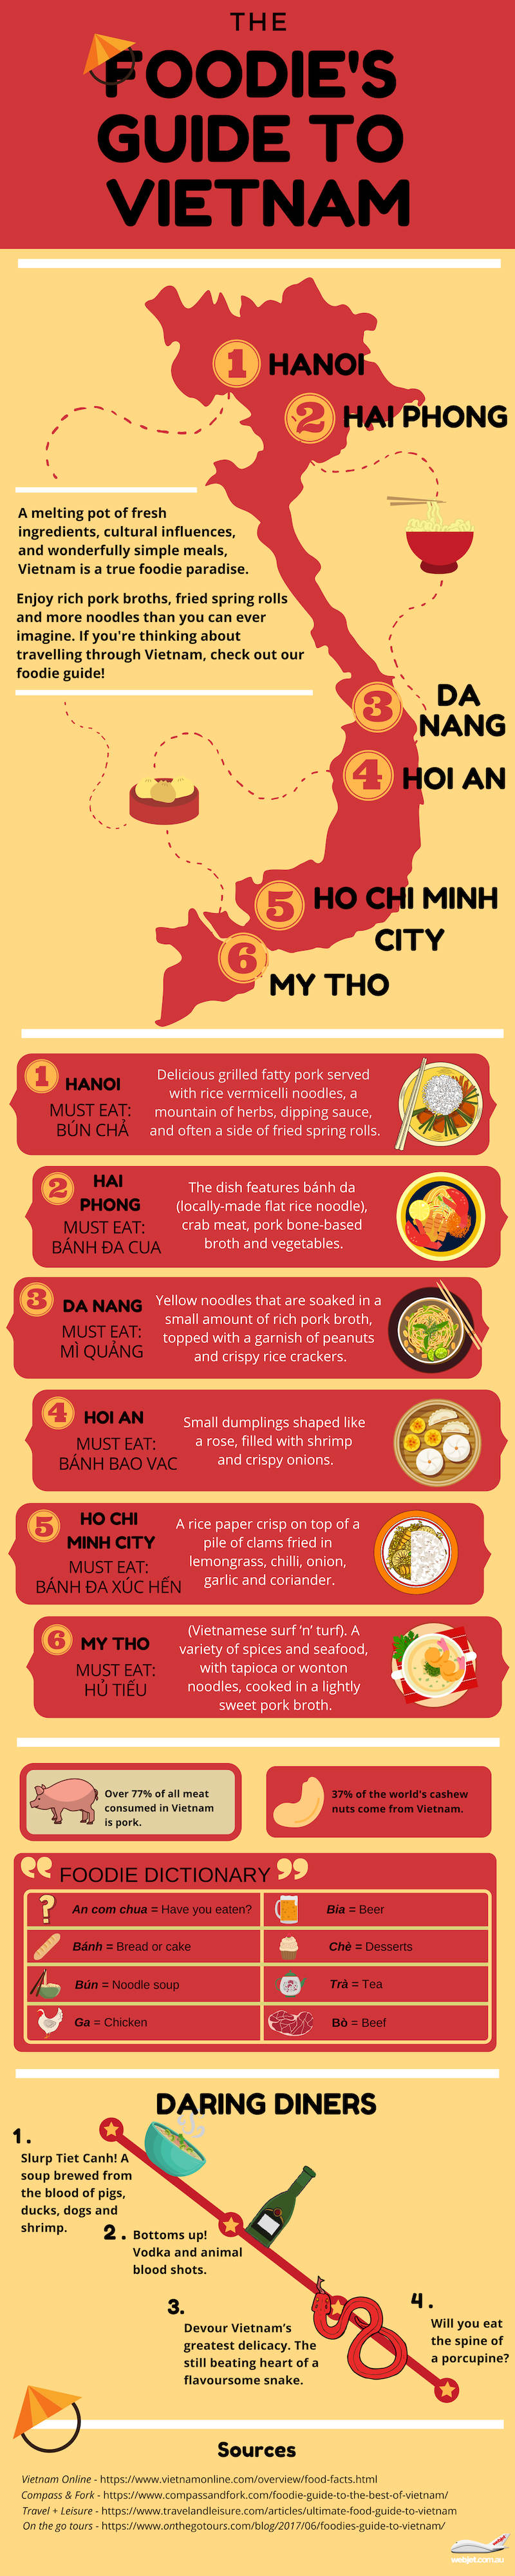 Vietnamese Cuisine: A Melting Pot of Flavors and Cultures - Infographic